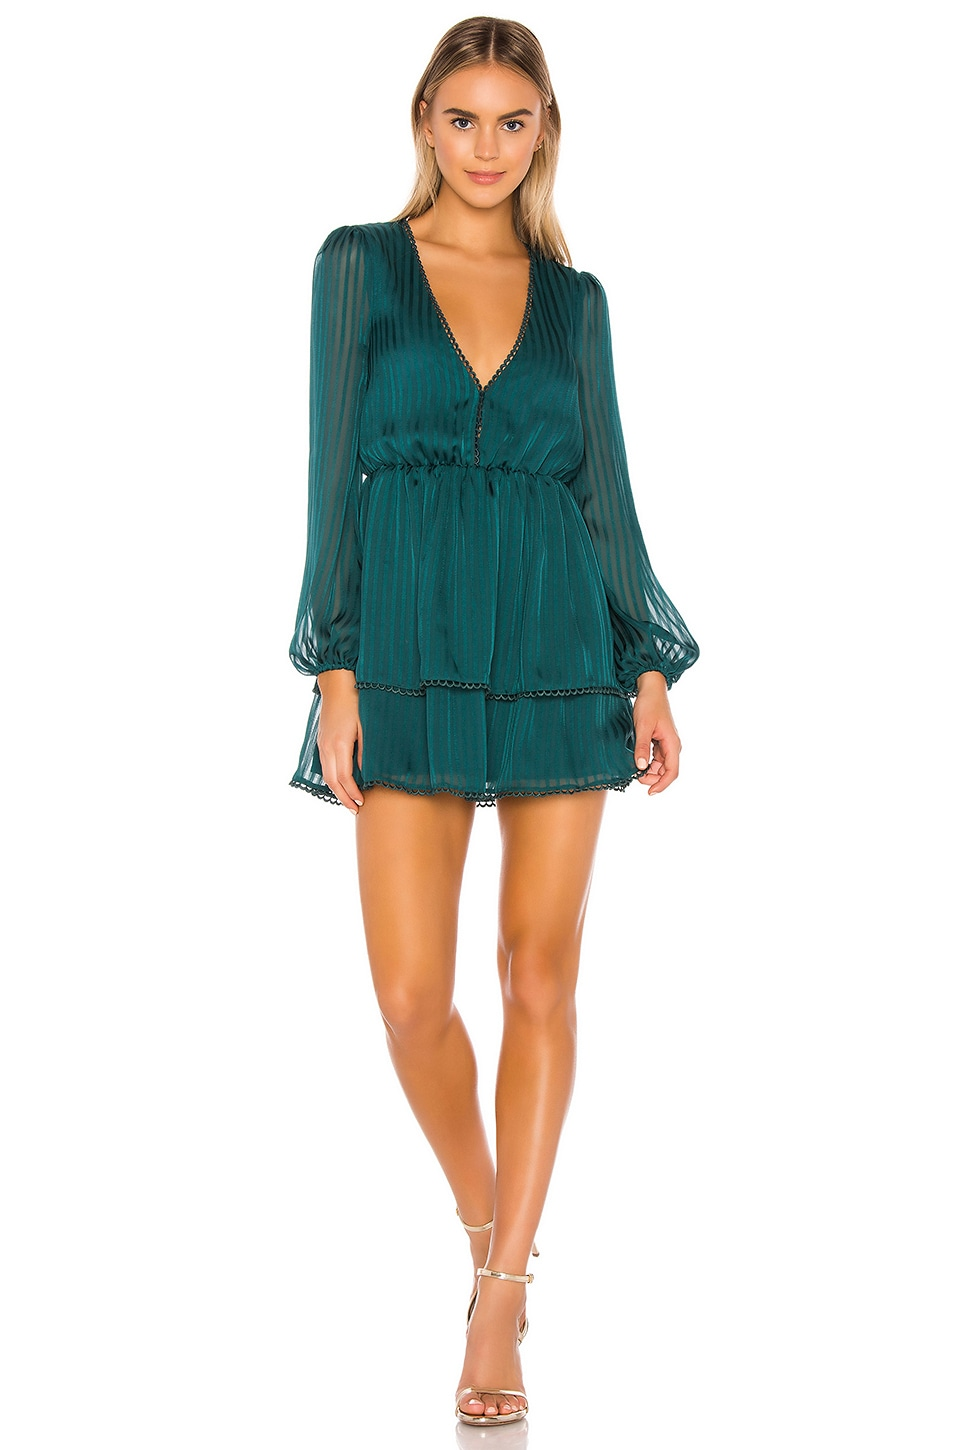 Privacy Please Alora Mini Dress in Moss Green